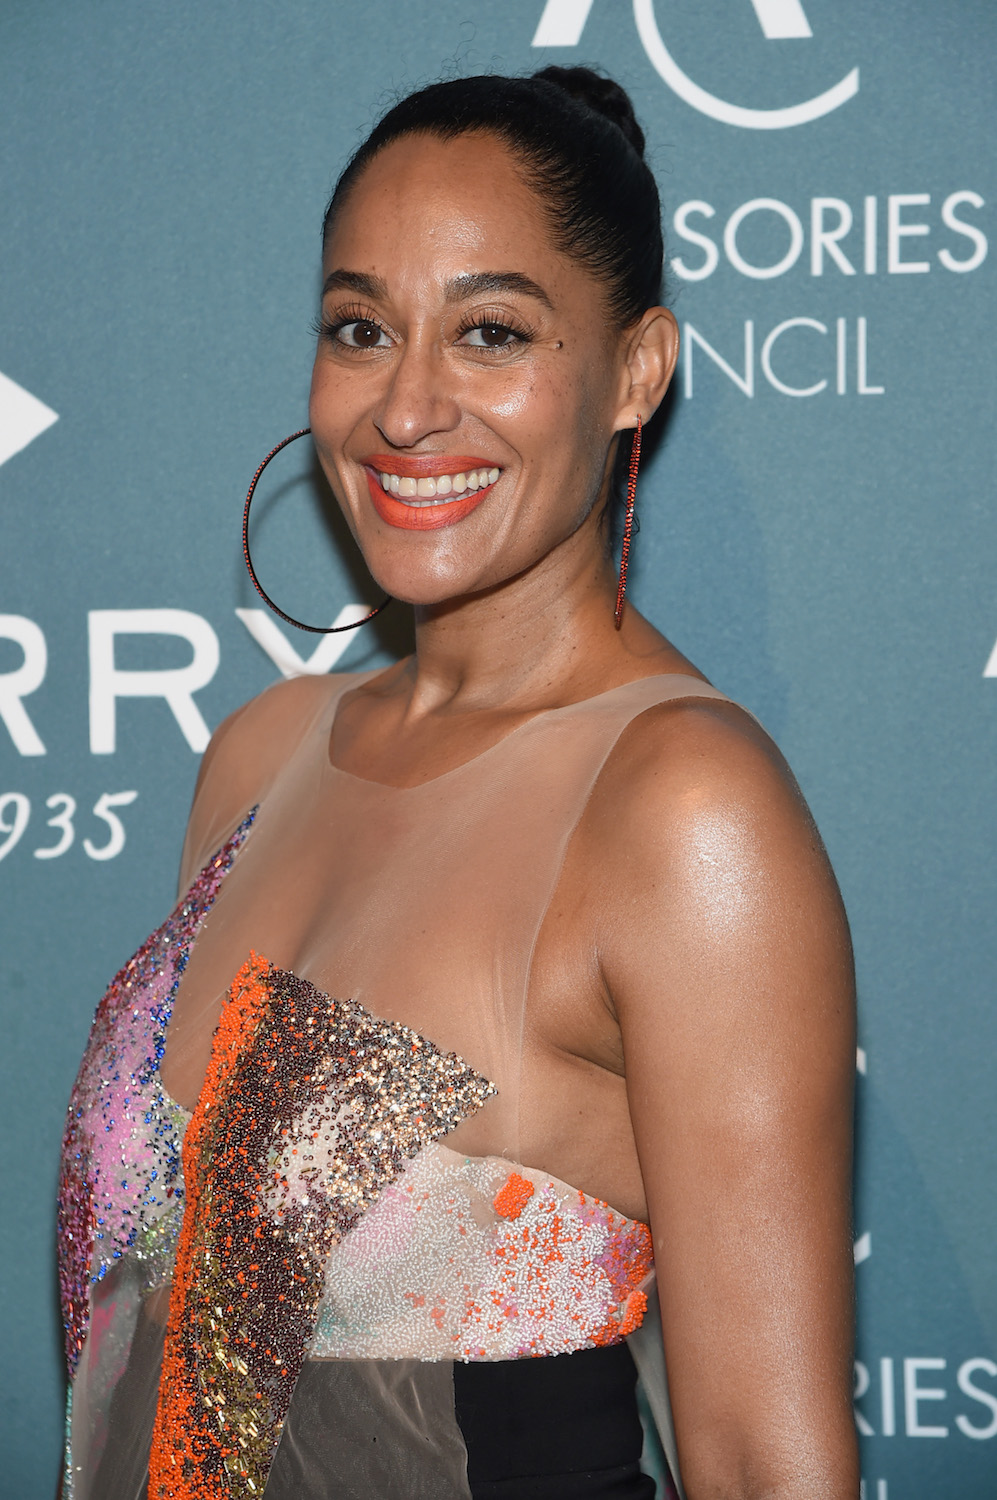 Tracee Ellis Ross attends the 22nd Annual Accessories Council ACE Awards at Cipriani 42nd Street on June 11, 2018 in New York City.